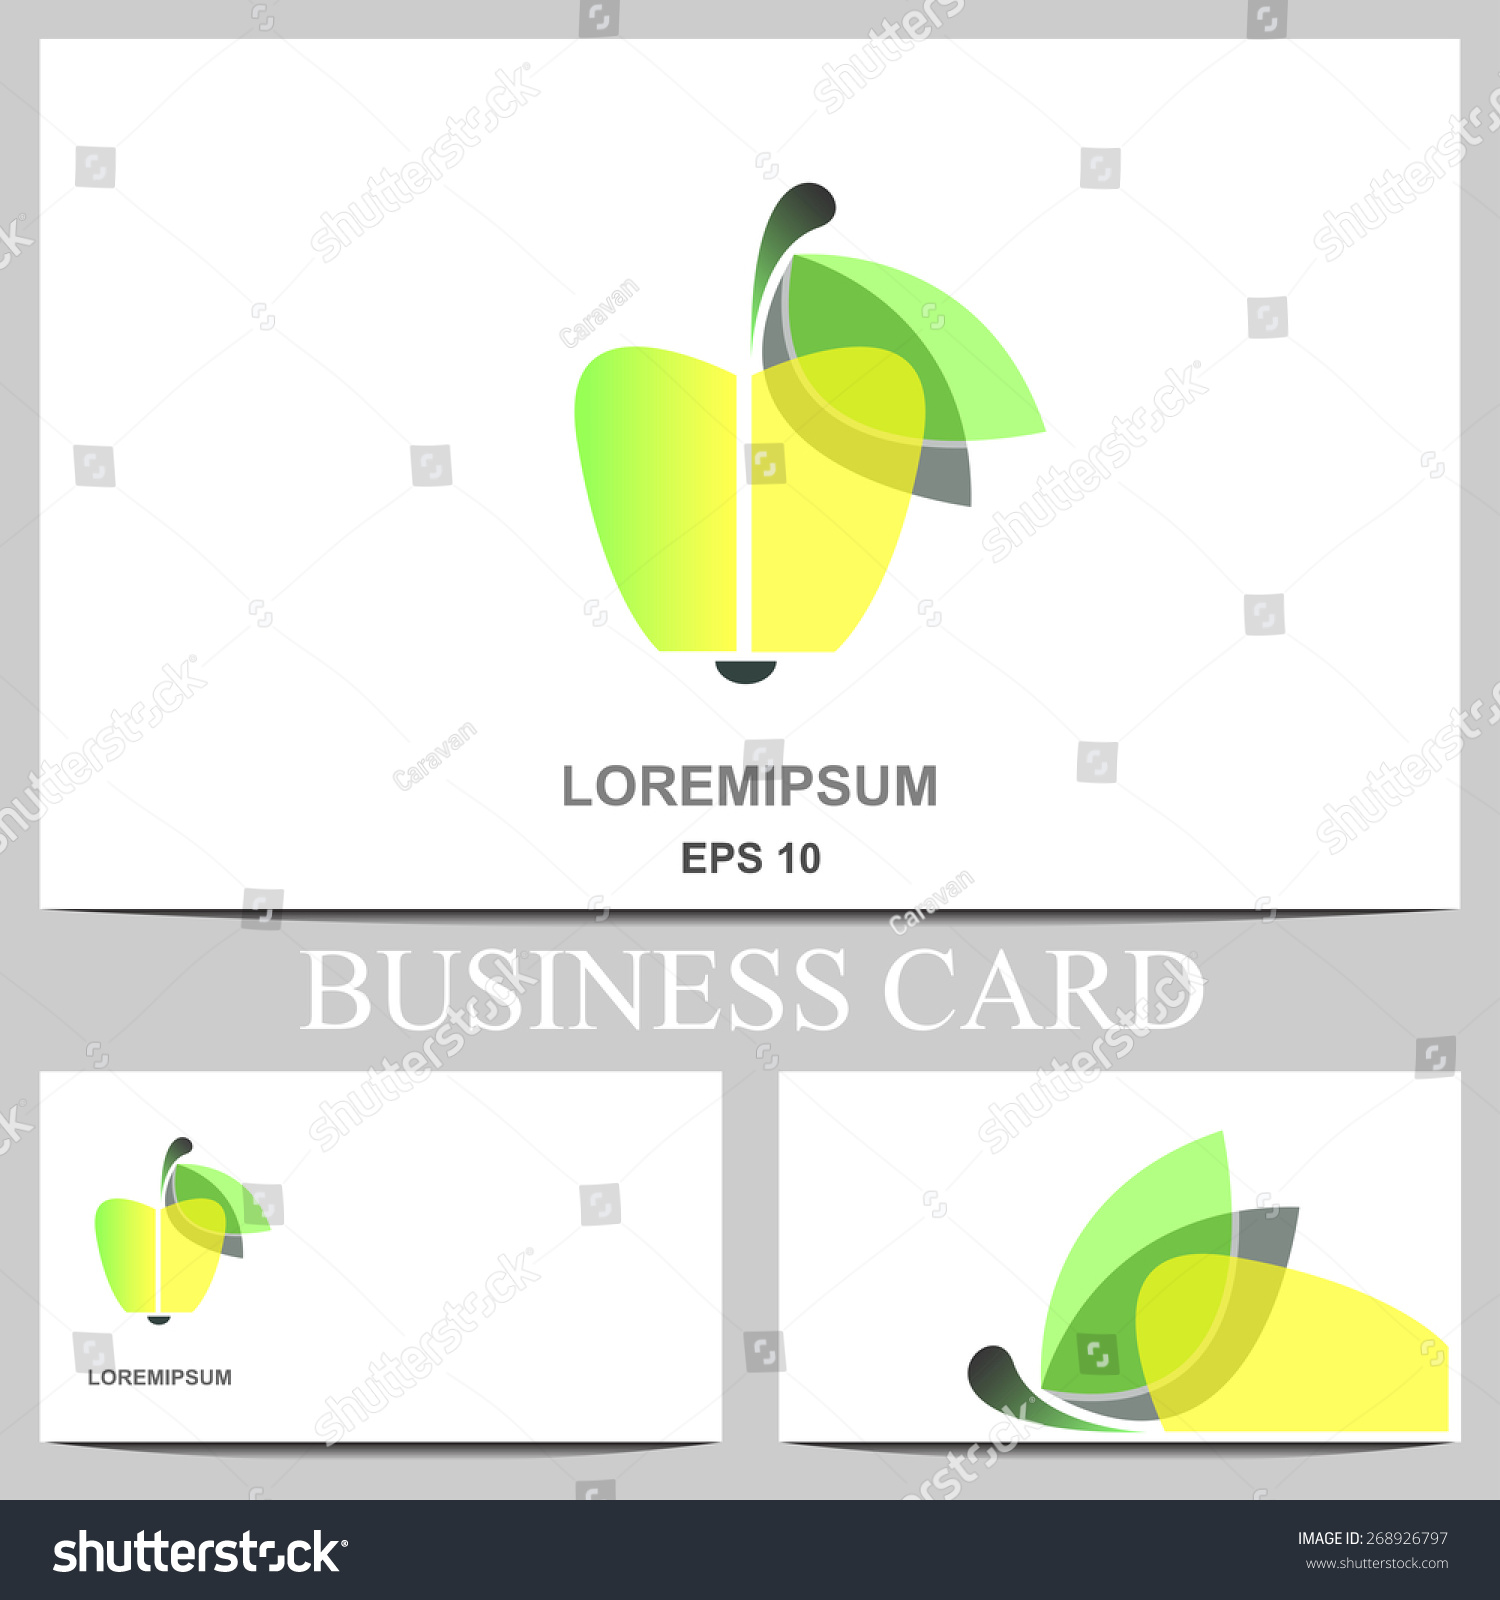 Business card apple stock vector 268926797 shutterstock colourmoves